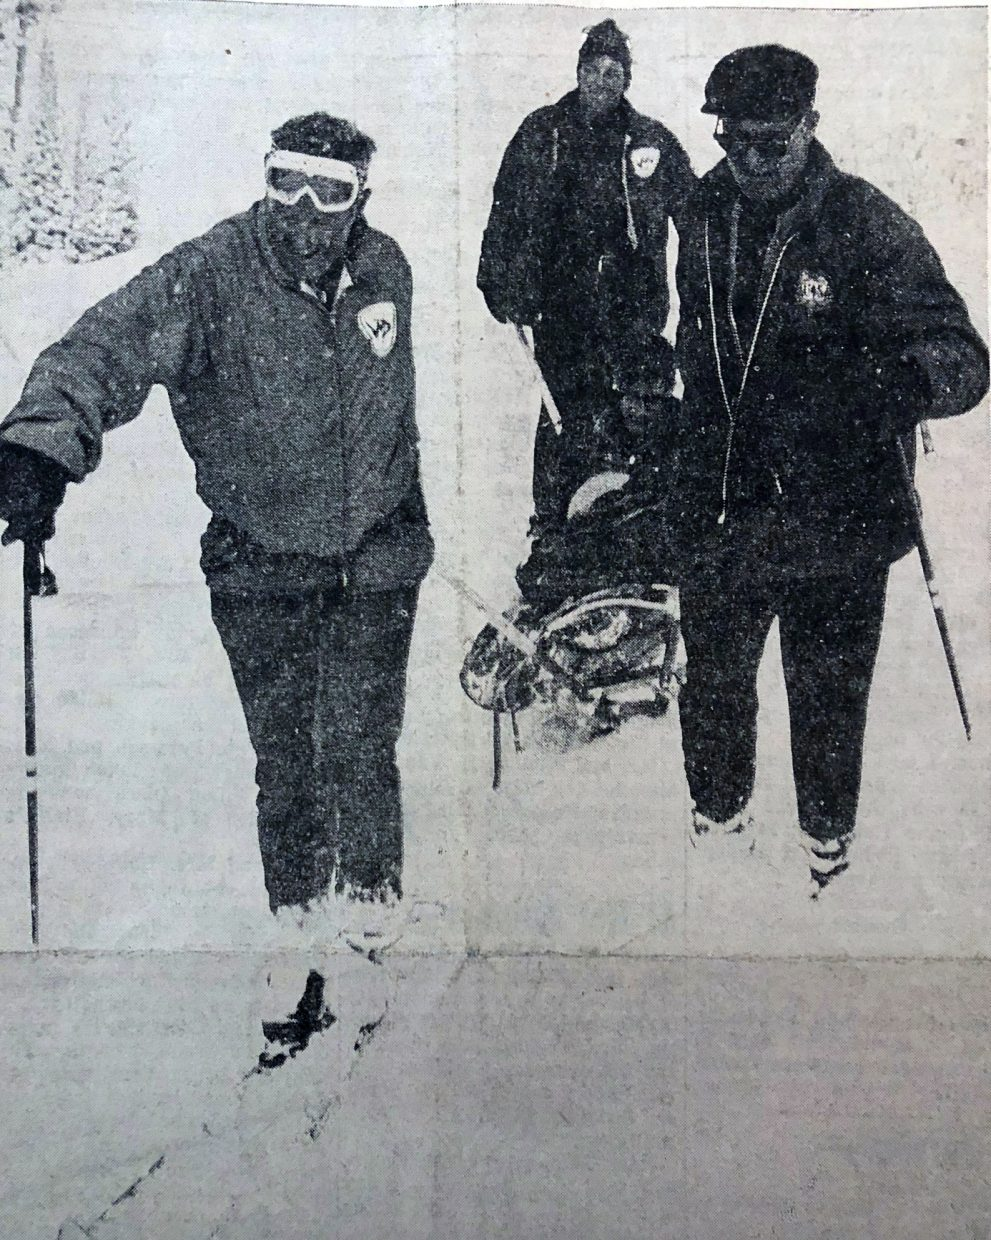 RESCUE TEAM — Albert Hendricks, 17, of Valhalla, N.Y., is brought down from the Rollins Pass area Tuesday, March 19, 1968 by a rescue team. Ted Birdsill, left, and C.B. Jensen, right, of the Winter Park Ski Area are joined by Wait Werner, center, a ranger with the Fraser Ranger District, to pull Hendricks, seated, from the pass. Hendricks and two companions had spent three nights out, while attempting to hike over Rollins Pass from East Portal to Winter Park. (Sky-Hi News, 1968, by Bob Davis)